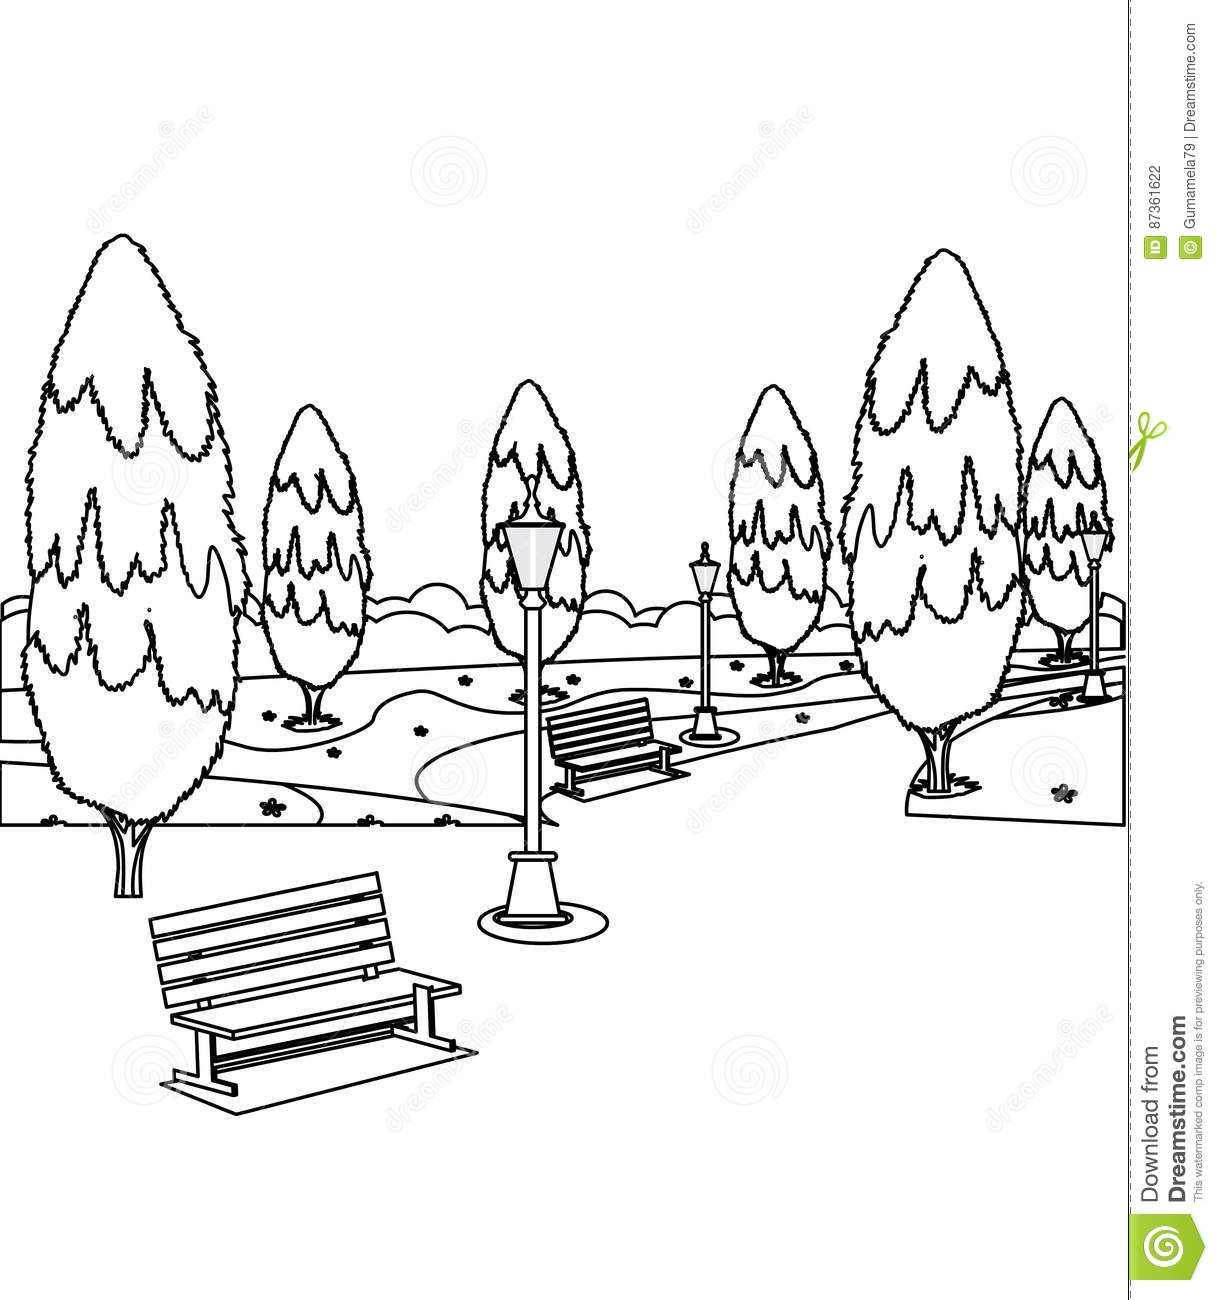 park with benches and trees coloring page